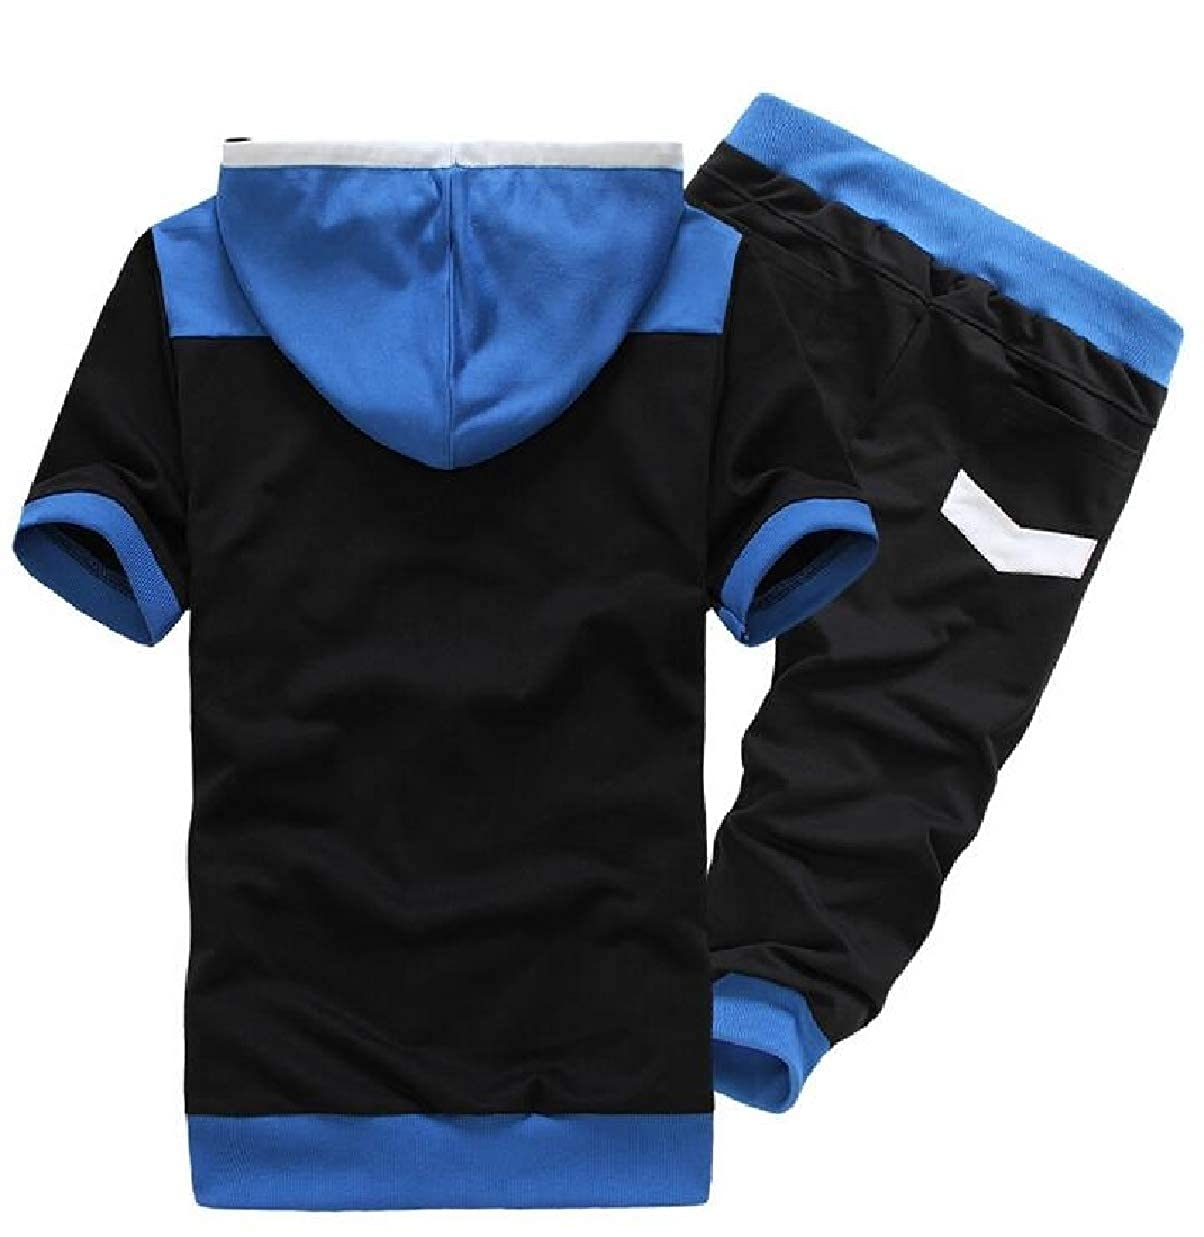 CBTLVSN Mens Contrast Color Running Two Piece Outfits Hot Shorts Casual Hooded Tracksuits